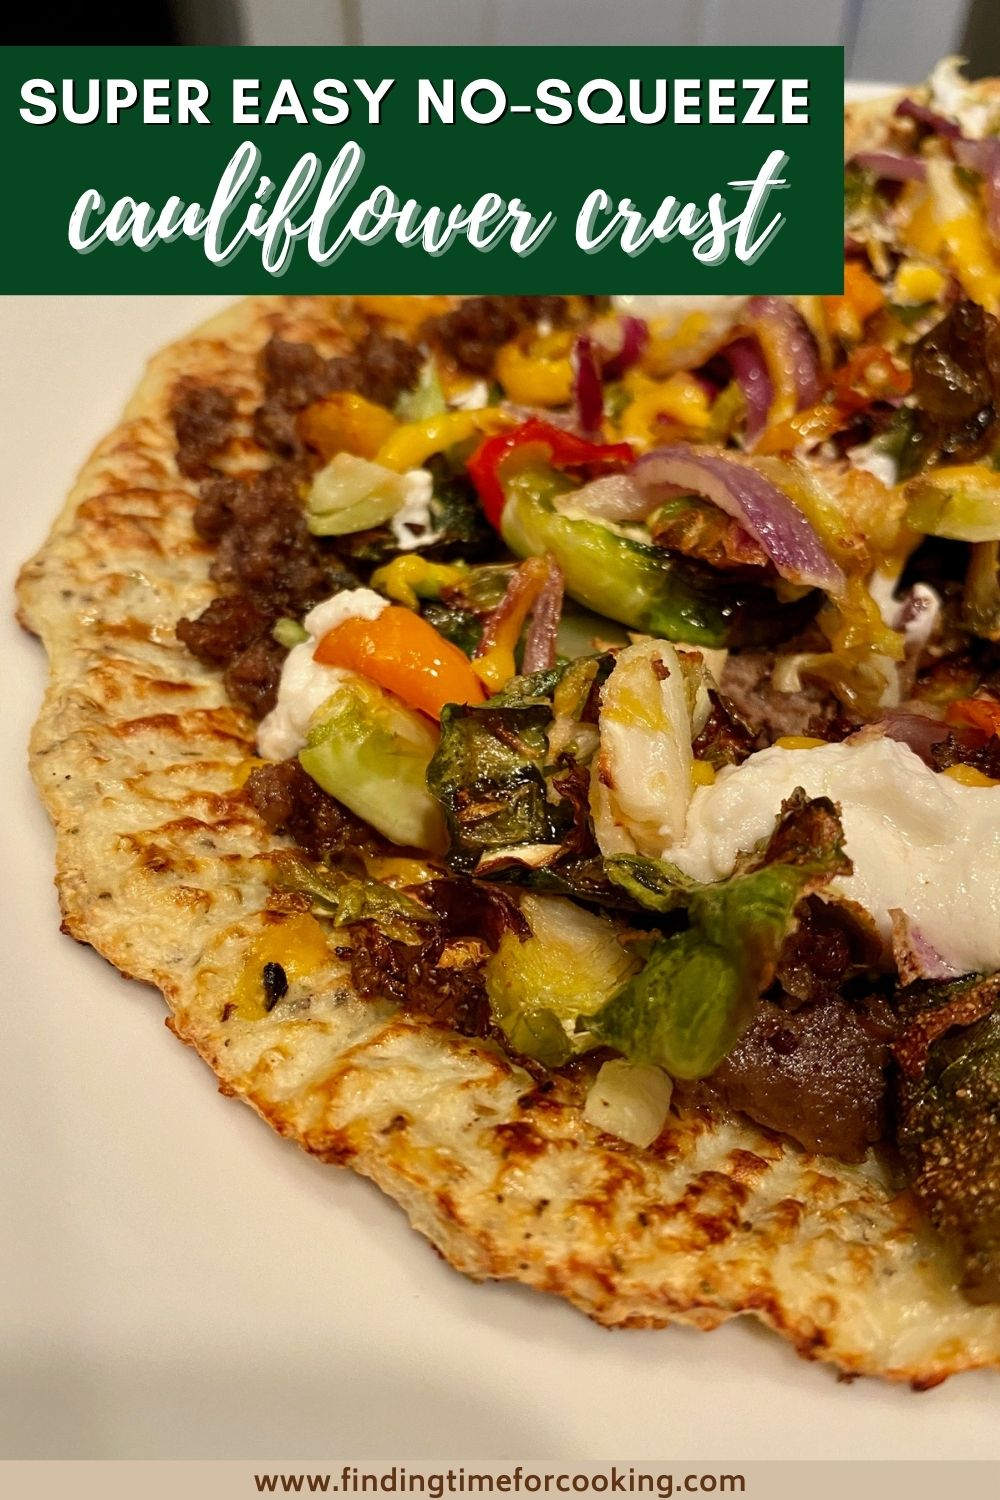 Super Easy No-Squeeze Cauliflower Pizza Crust | This amazing easy cauliflower pizza crust doesn't require any pre-cooking the cauliflower or squeezing all the moisture out...a (not weird) secret ingredient makes this super fast and easy. Great keto, low-carb, or grain-free dinner option. #cauliflower #cauliflowercrust #keto #lowcarb #glutenfree #gf